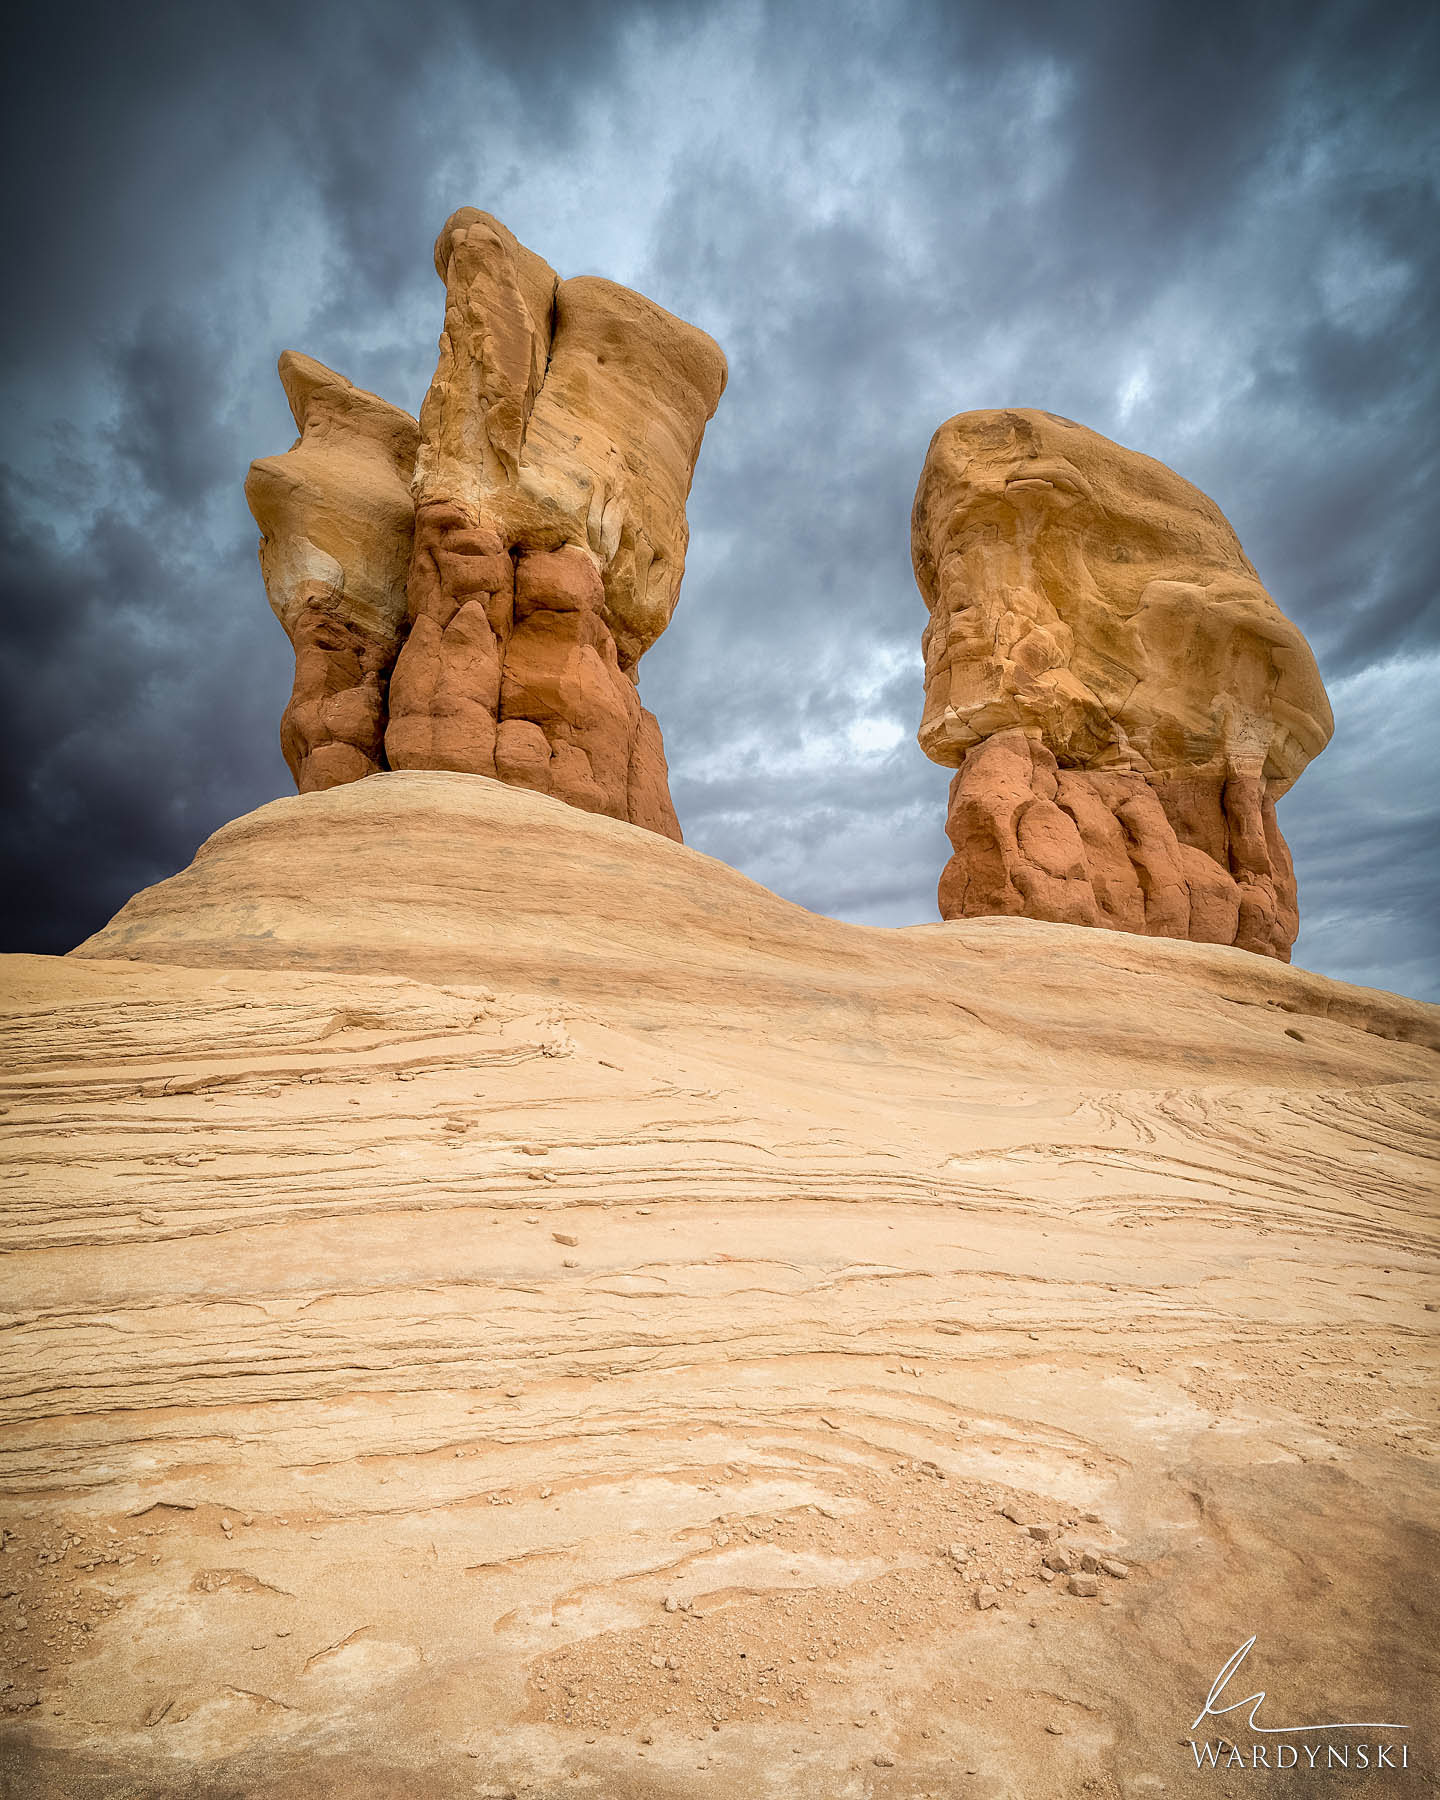 Fine Art Prints | Limited Edition of 100 Sandstone Hoodoos rise into the sky as an approaching storm threatens rain in Grand...